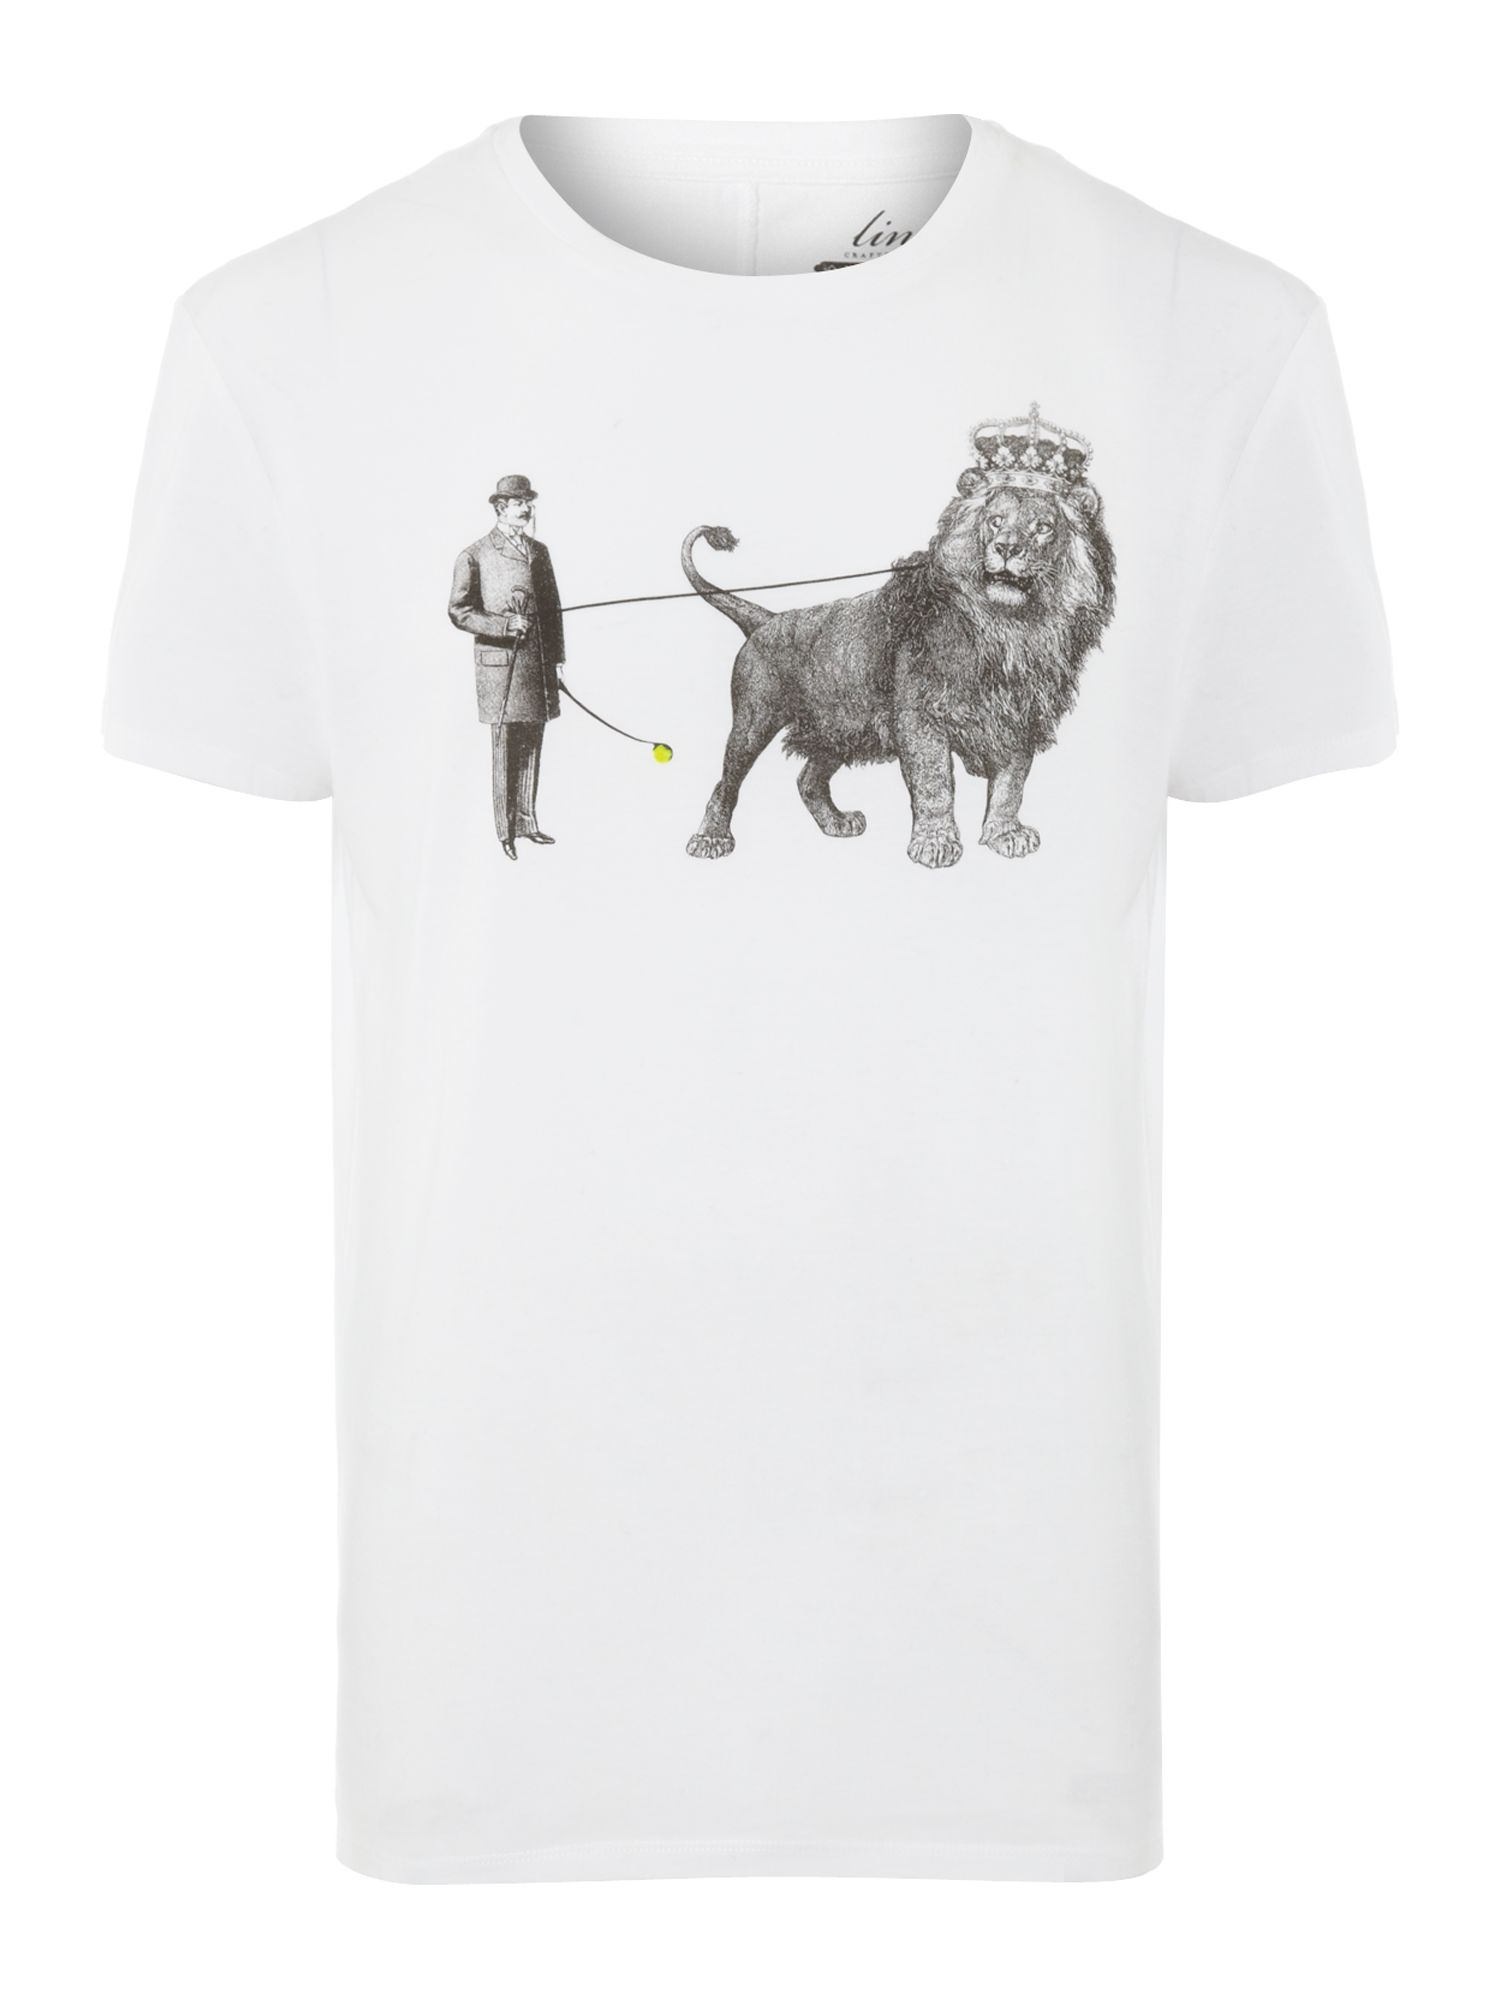 tame the lion graphic tee